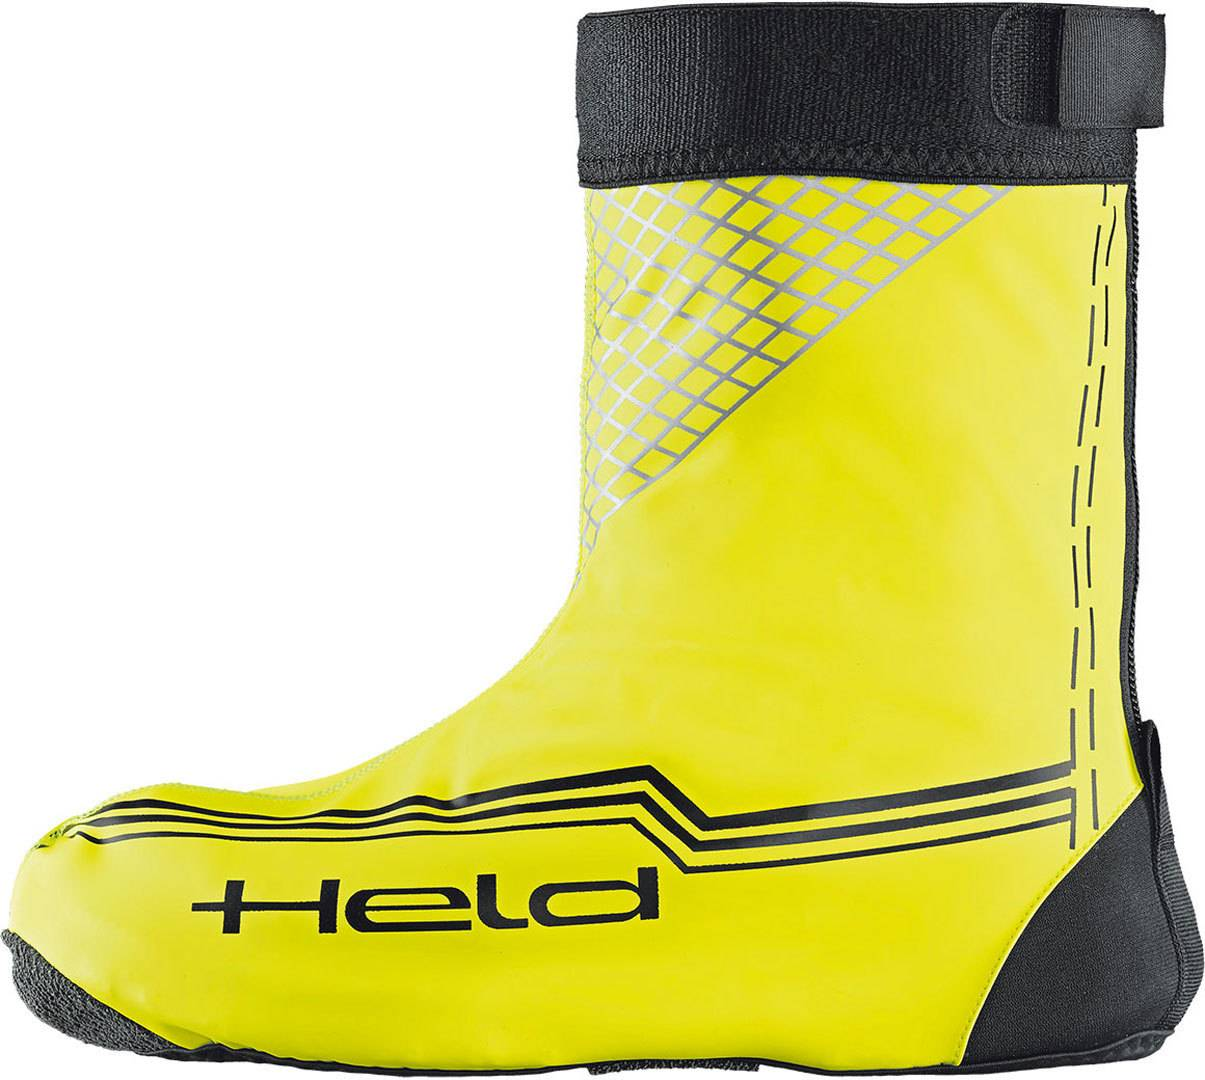 Held Boot Skin Rain Over bottes courtes Jaune taille : M